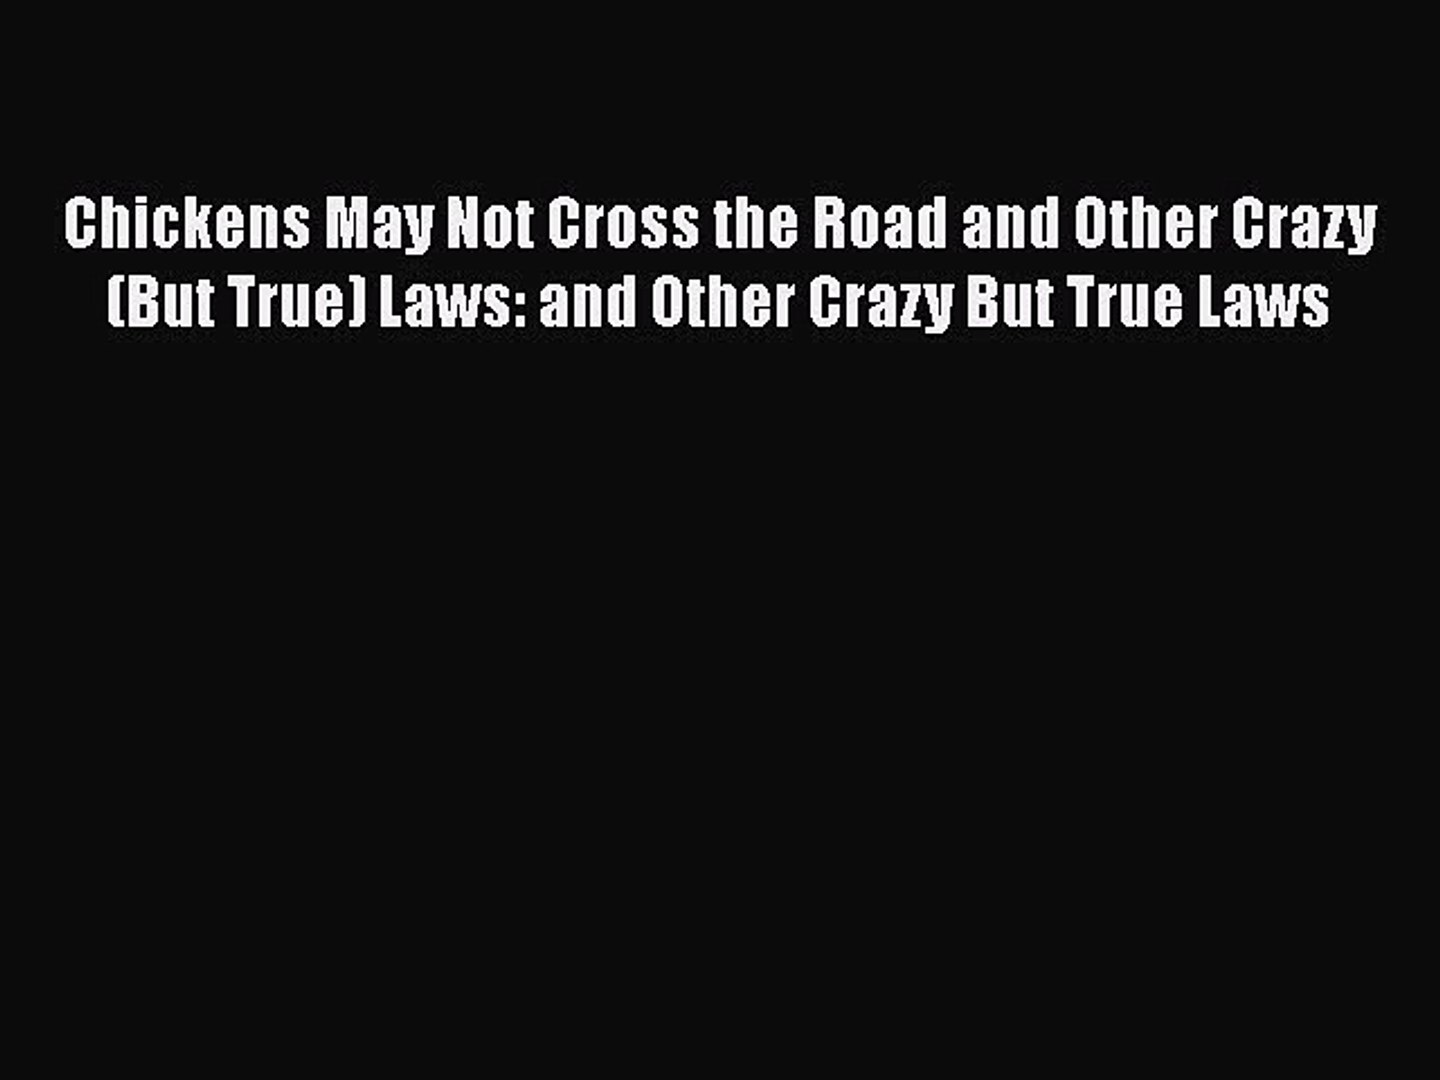 Chickens May Not Cross the Road and Other Crazy(But True) Laws: and Other Crazy But True Laws